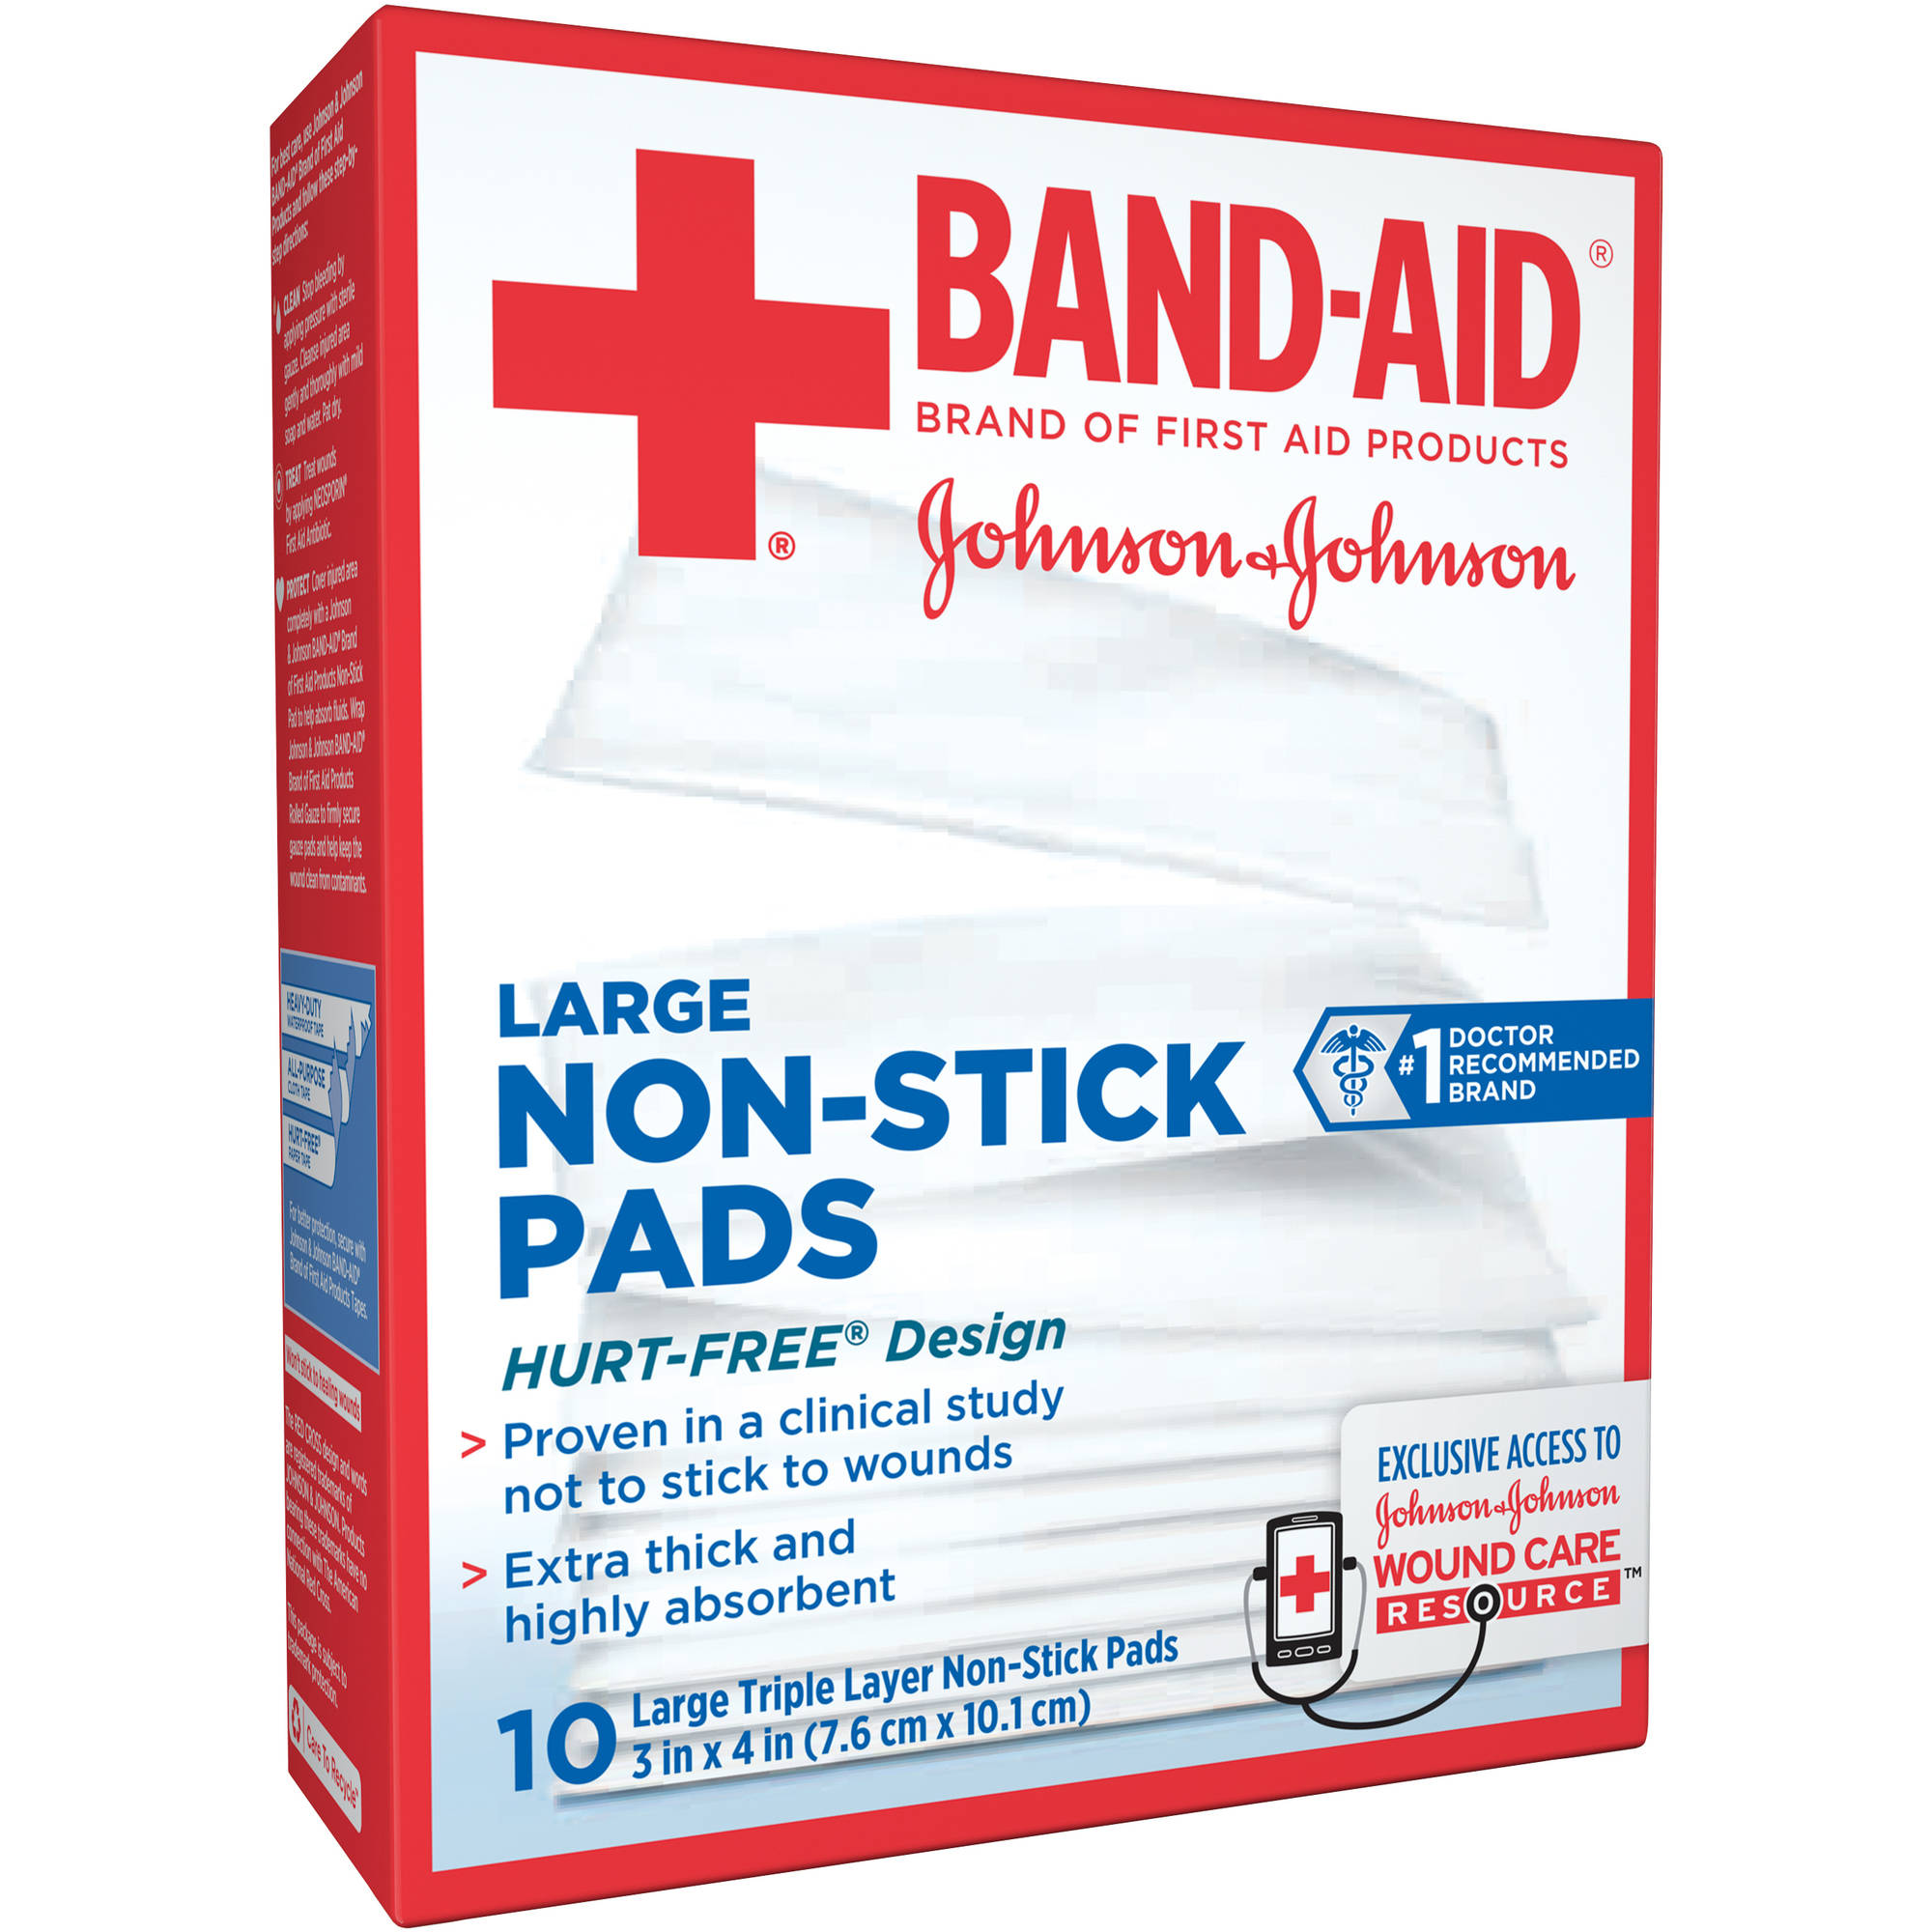 Band-Aid Non-Stick Pads, Large, 10 count